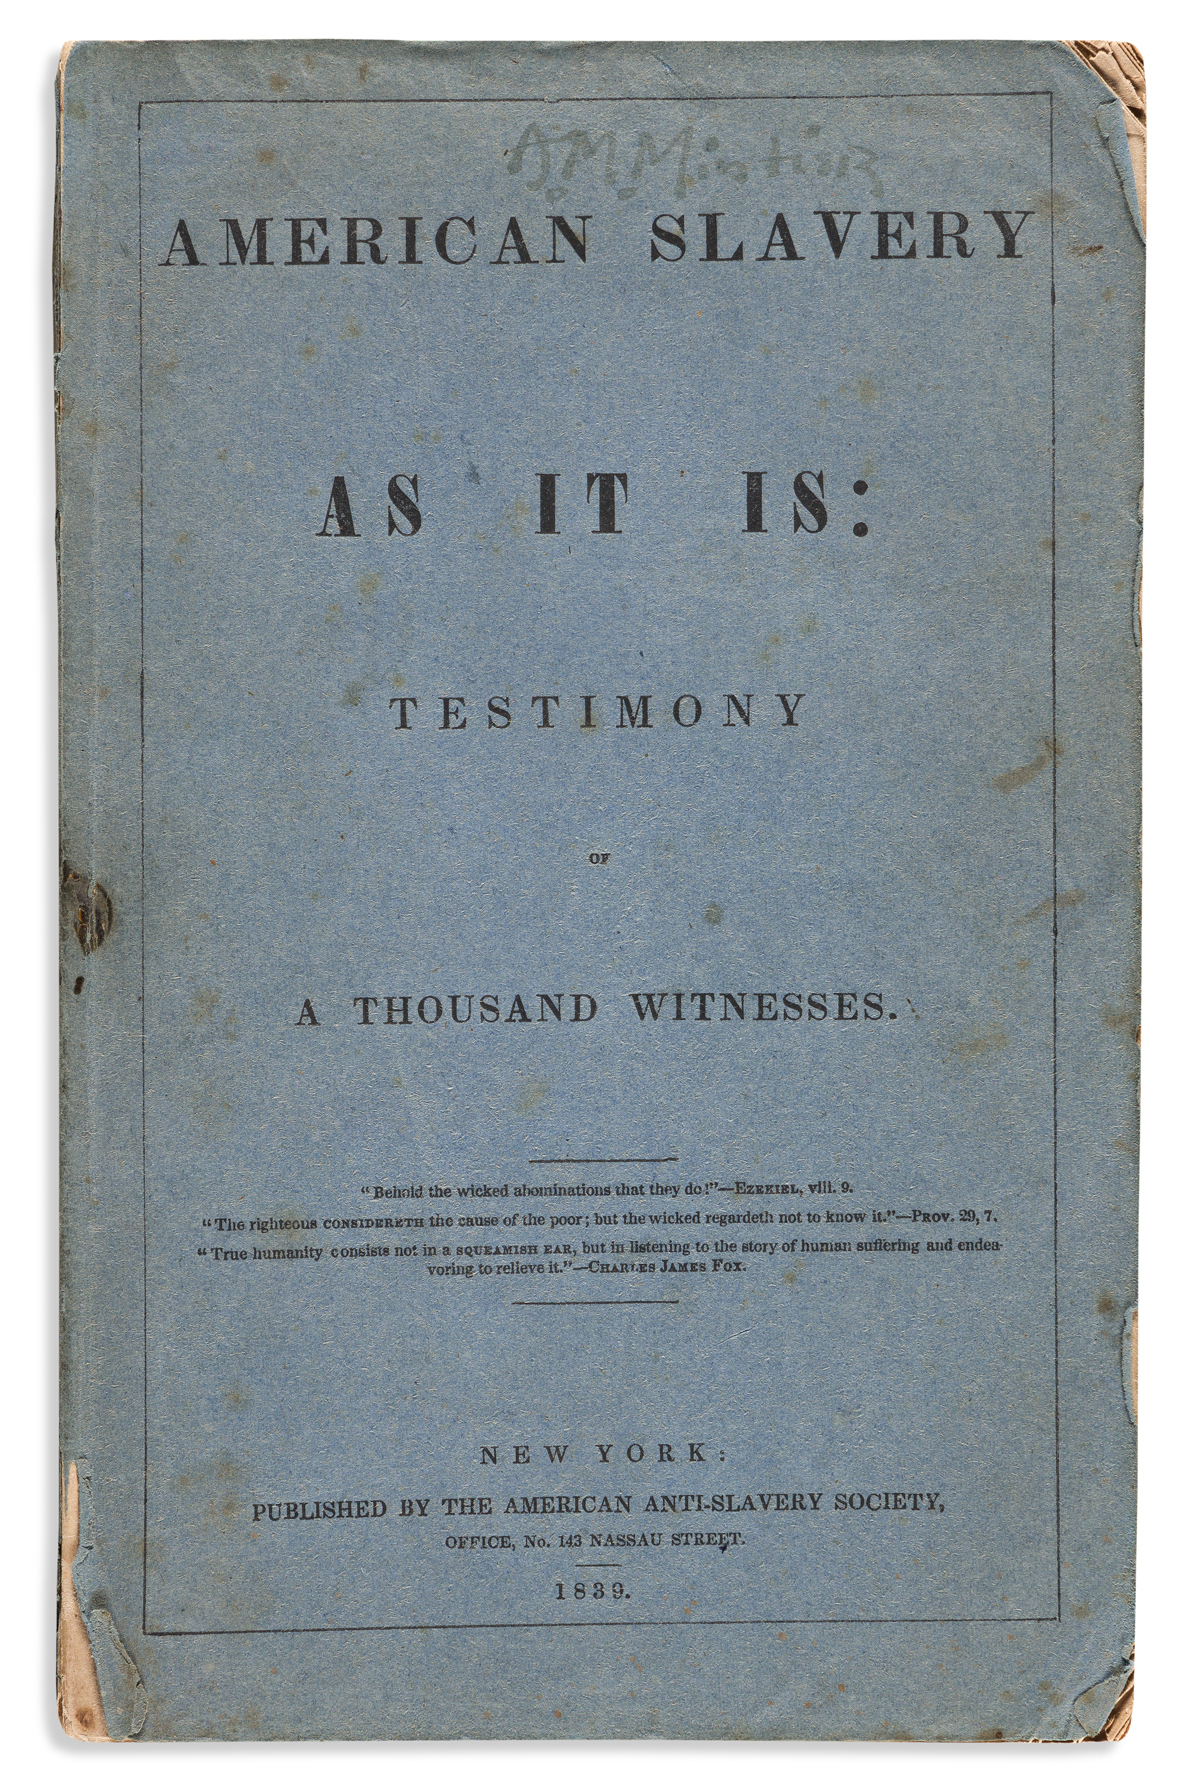 (SLAVERY AND ABOLITION.) [Theodore D. Weld; editor.] American Slavery As It Is: Testimony of a Thousand Witnesses.